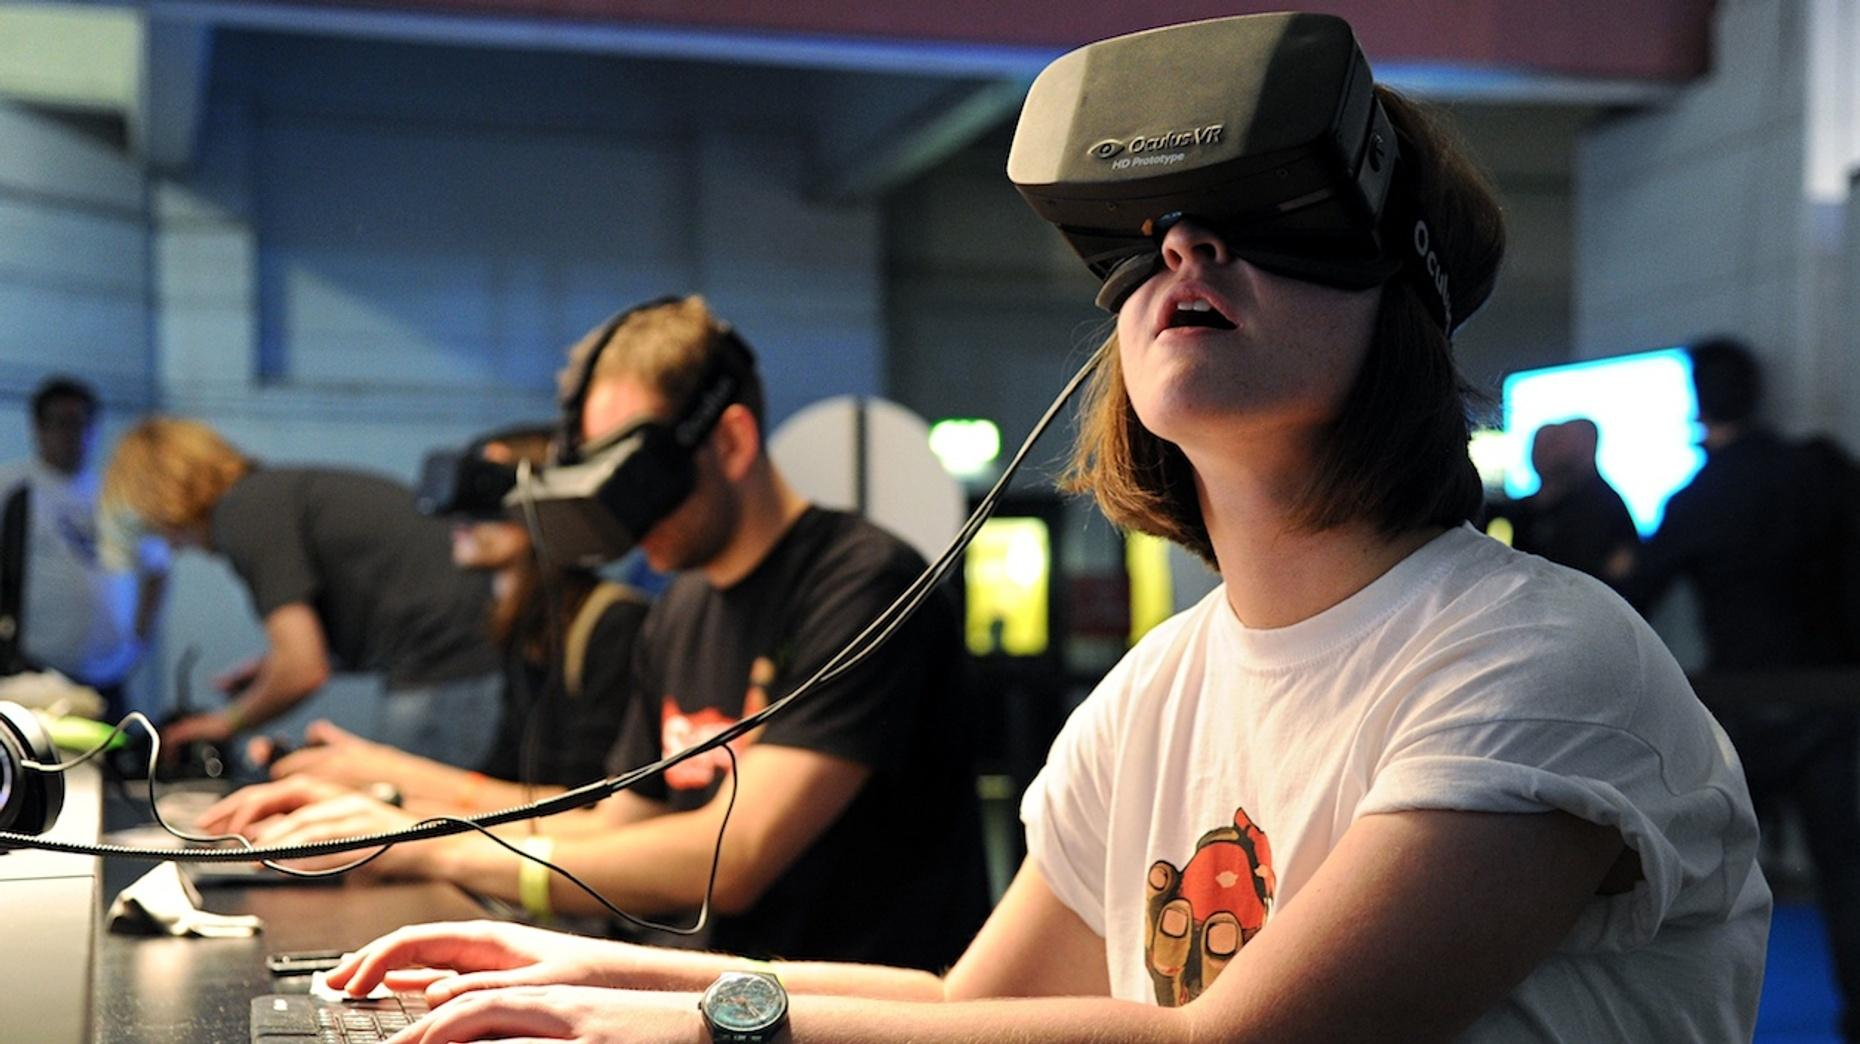 60-Minute Virtual Reality Play Session in Orem, UT